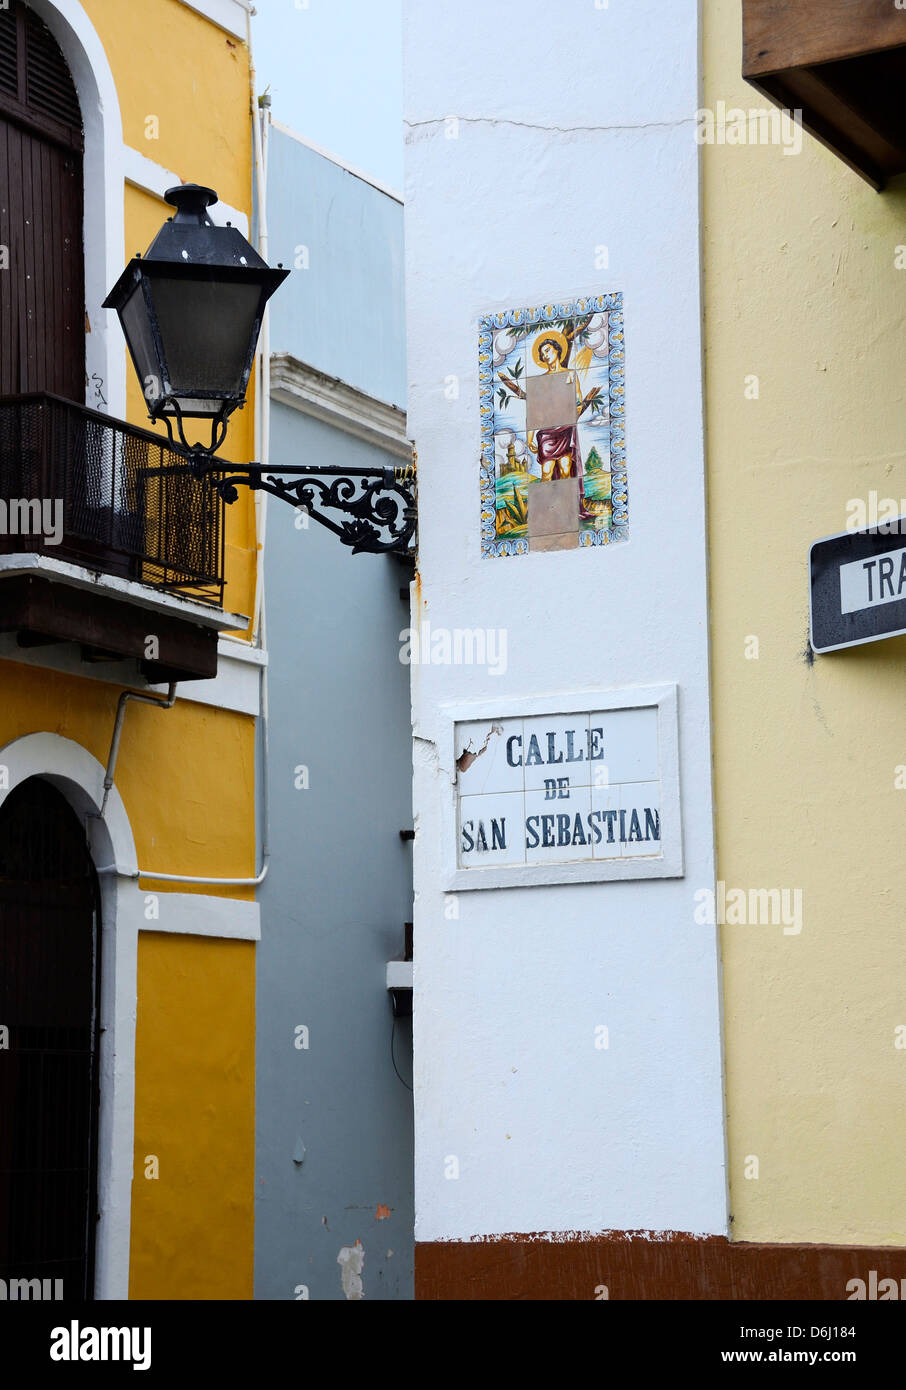 Lamp post and street signs in Old San Juan, Puerto Rico - Stock Image